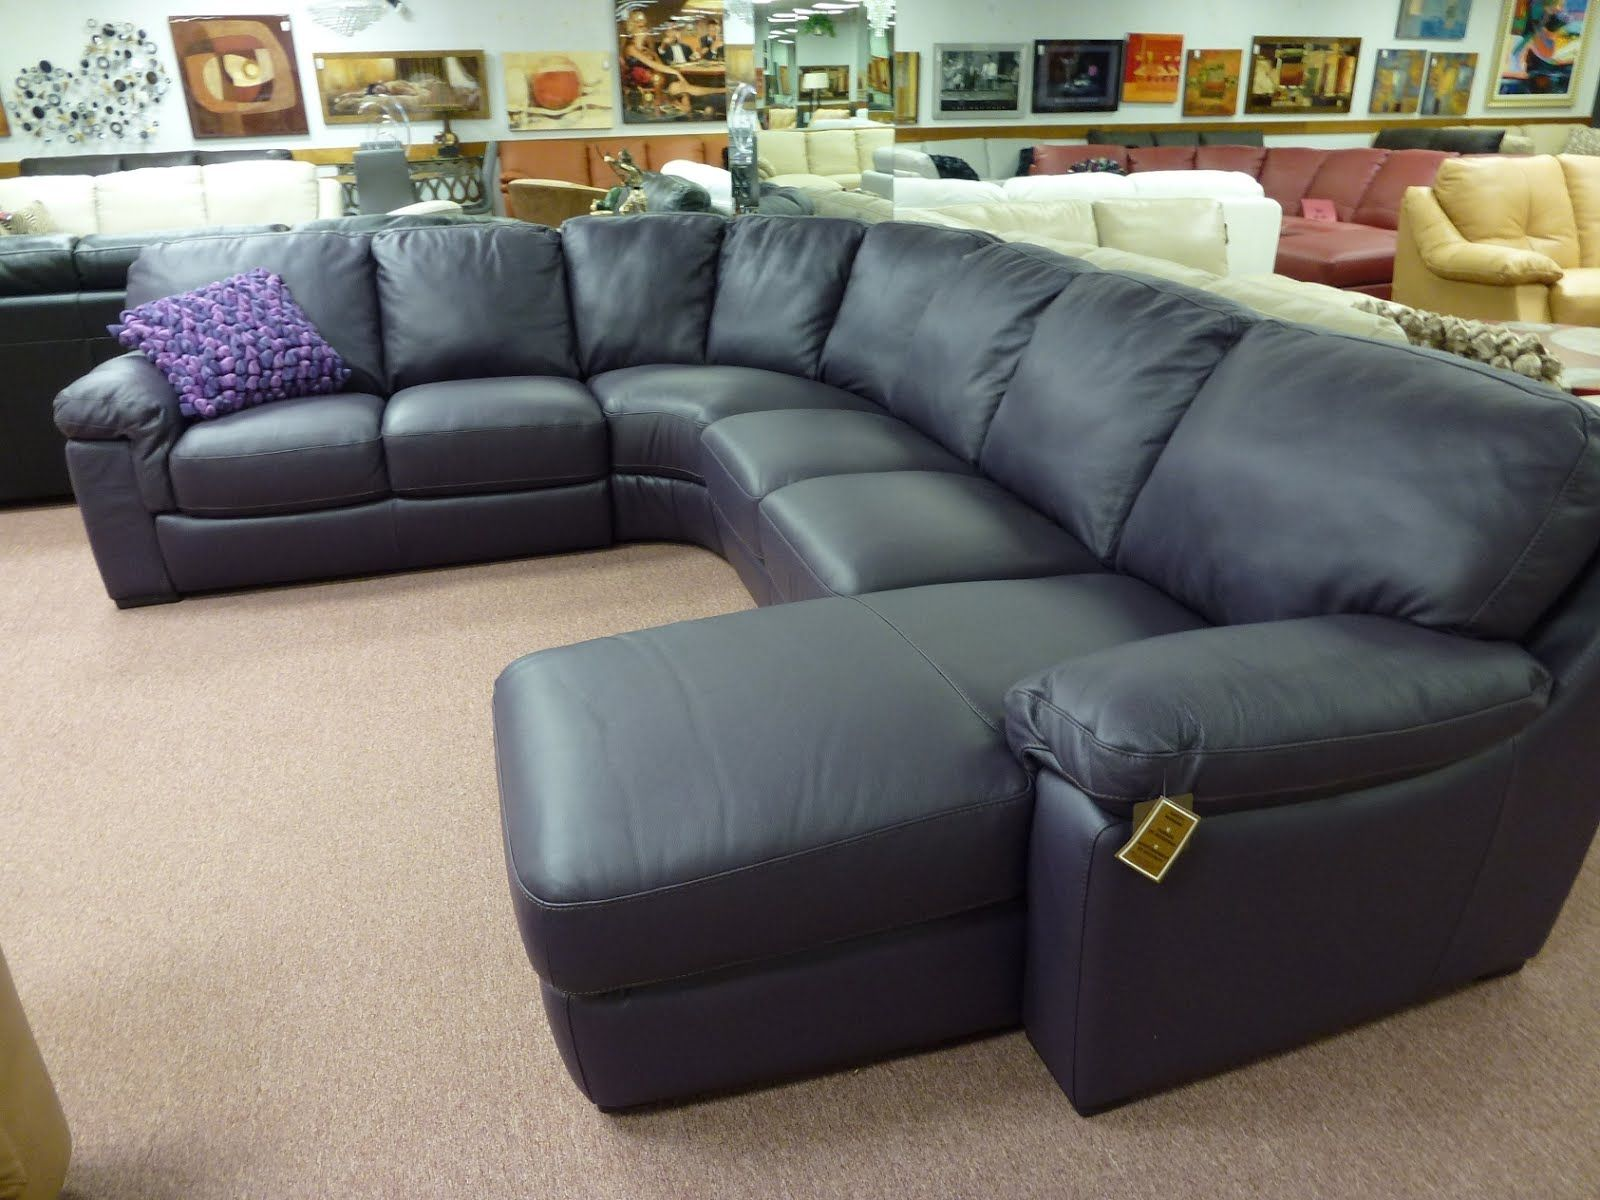 This Natuzzi Leather Sectional B594 Plum Eggplant Leather